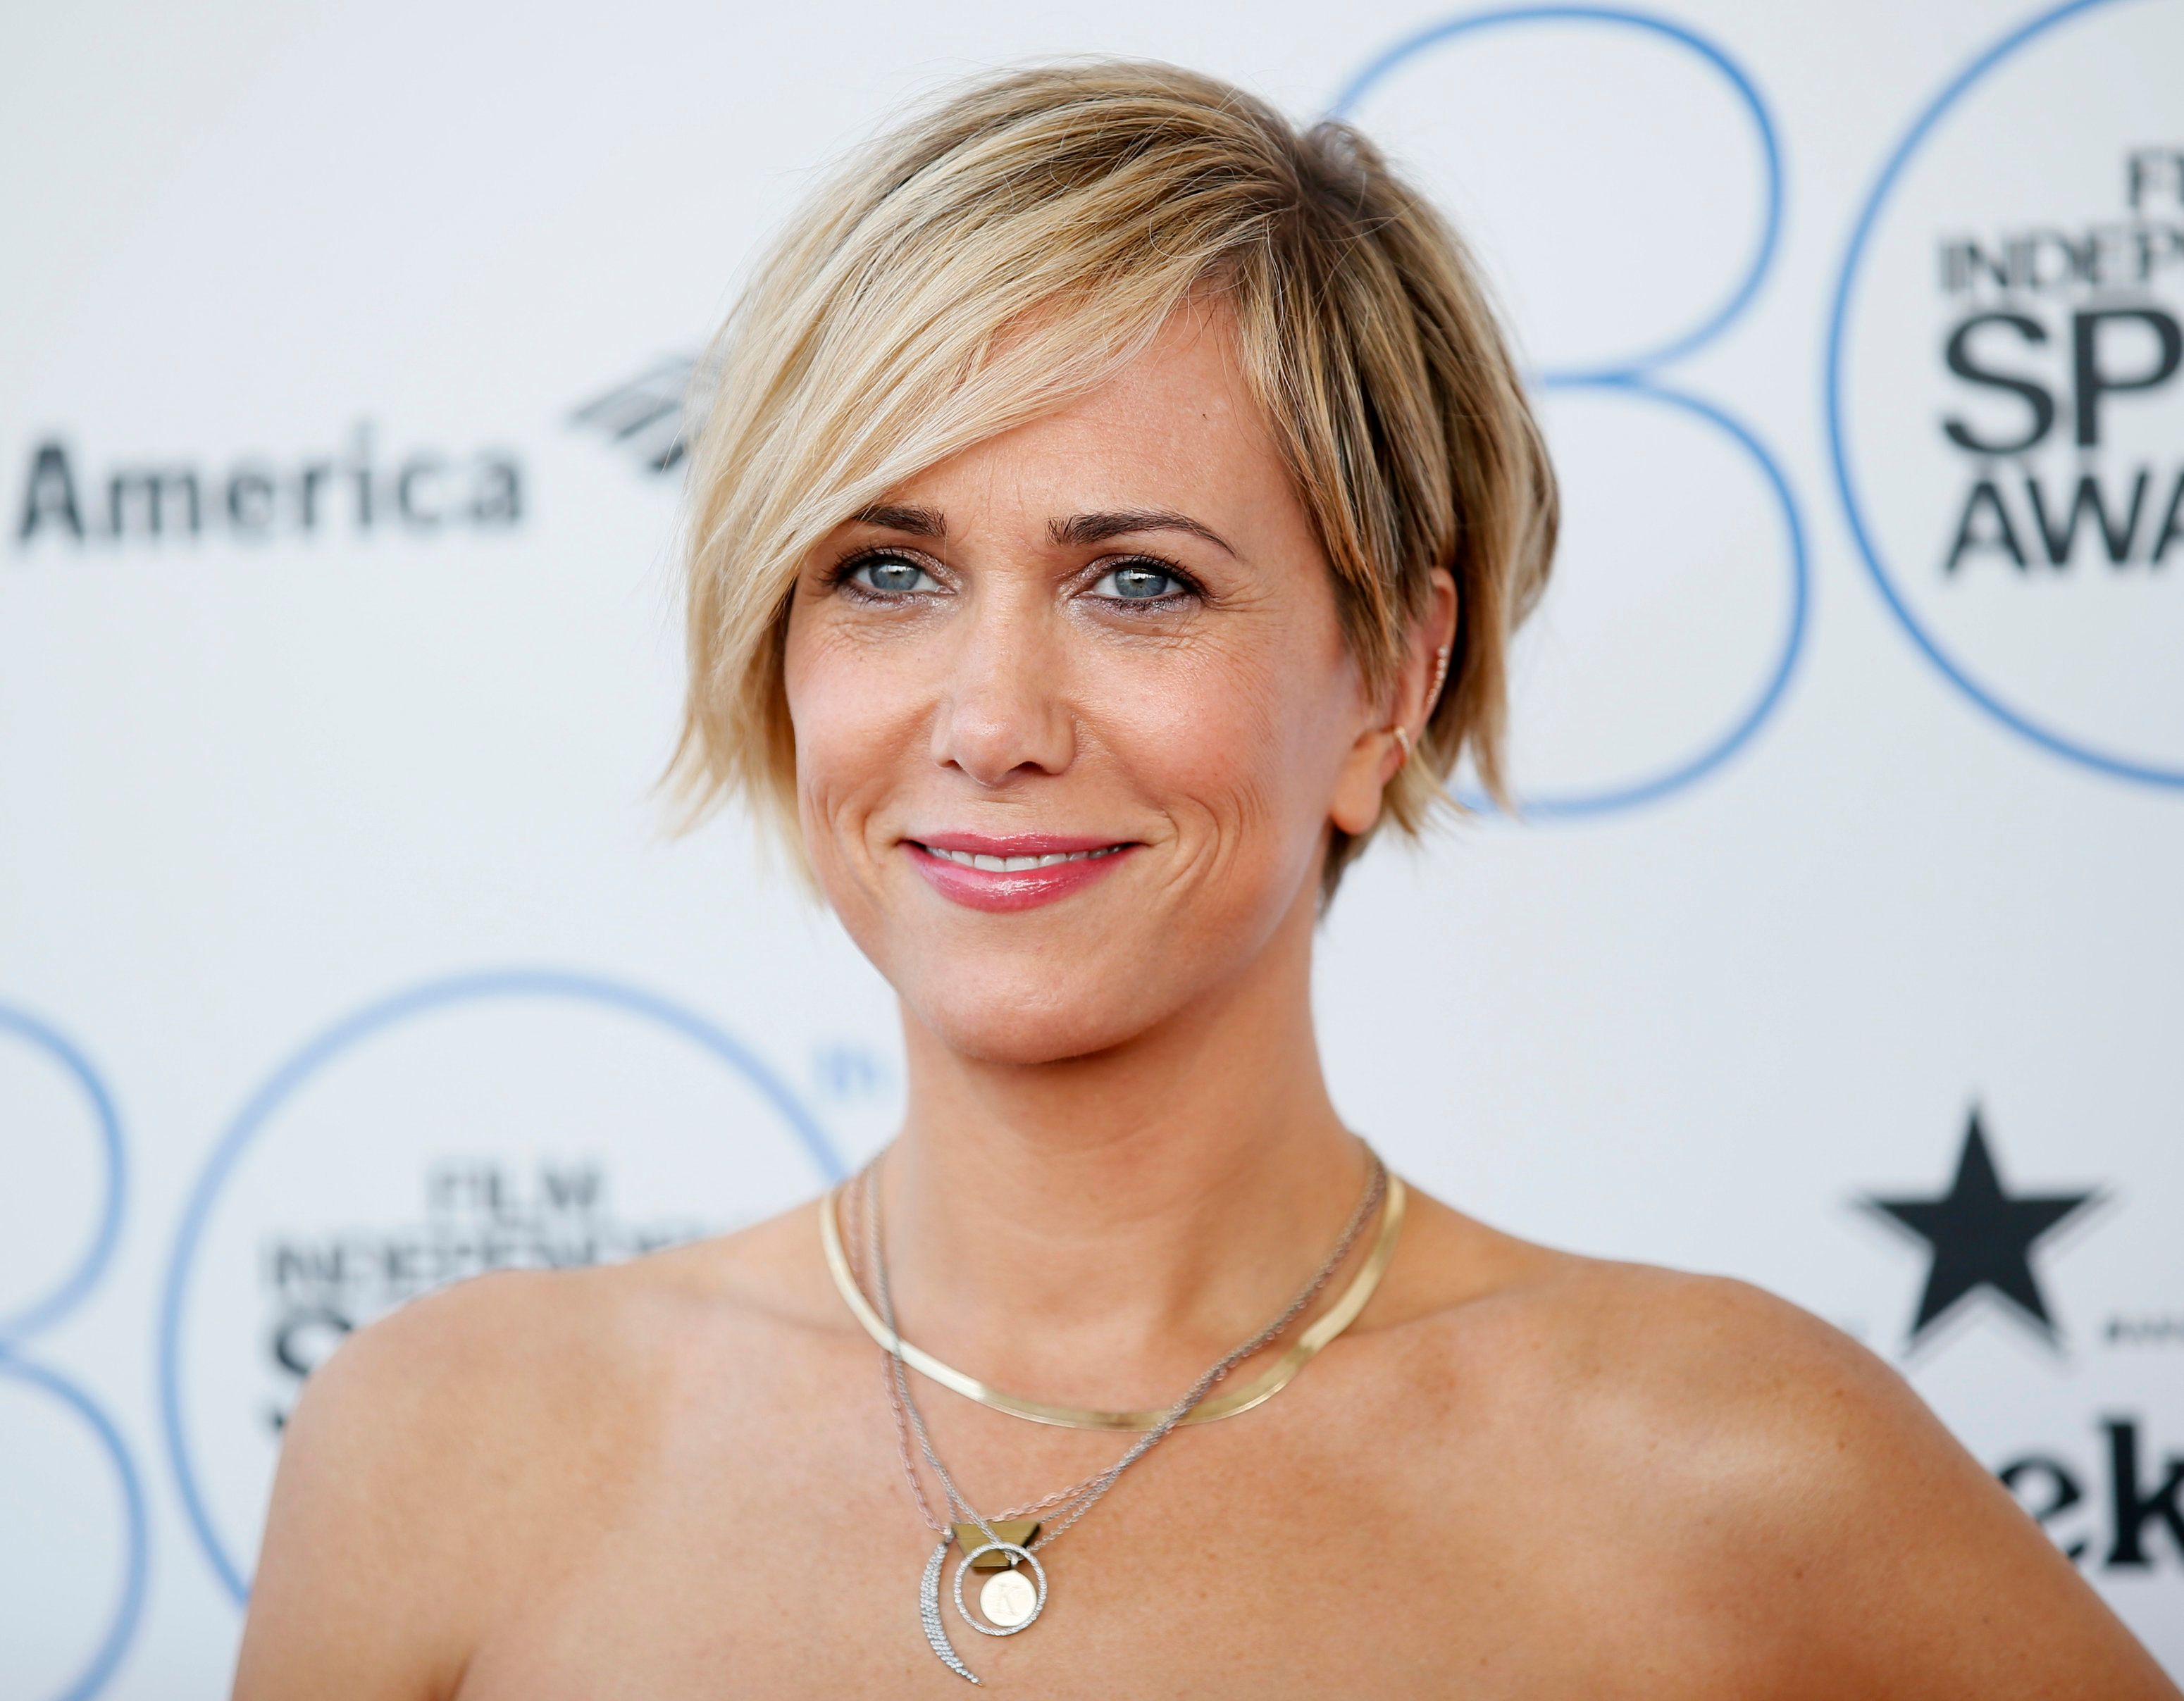 Kristen Wiig Reportedly In Talks To Play The Villain In 'Wonder Woman'